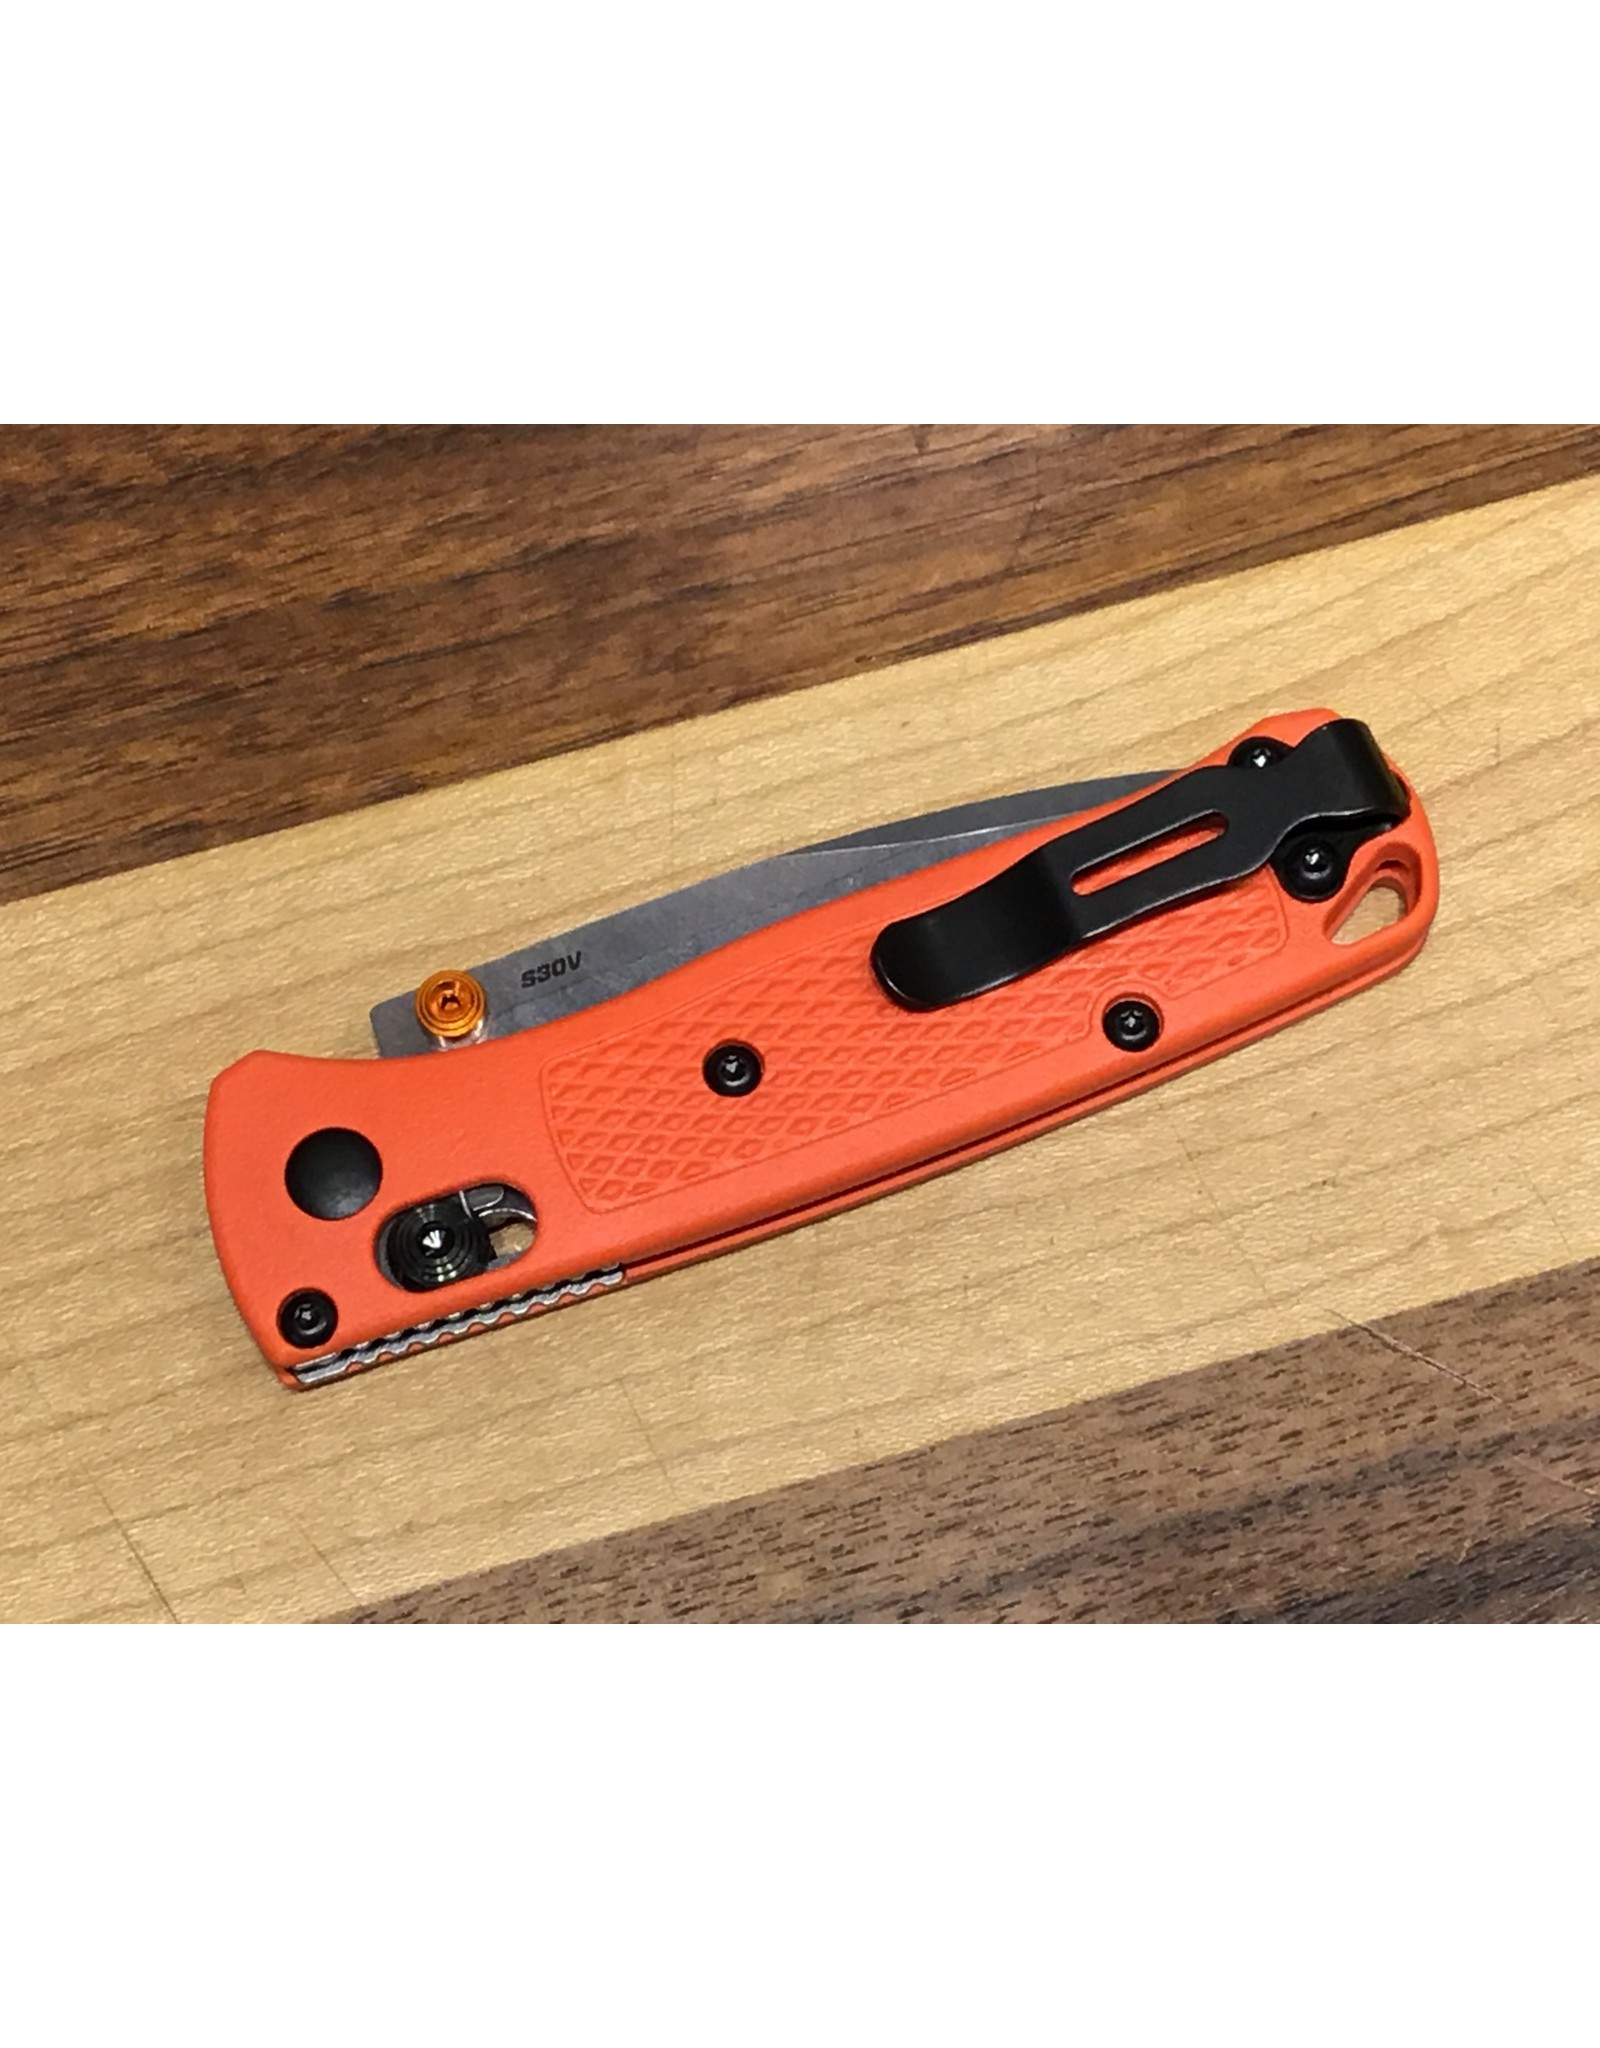 Benchmade Benchmade Mini Bugout 533 Orange Handle Satin Blade